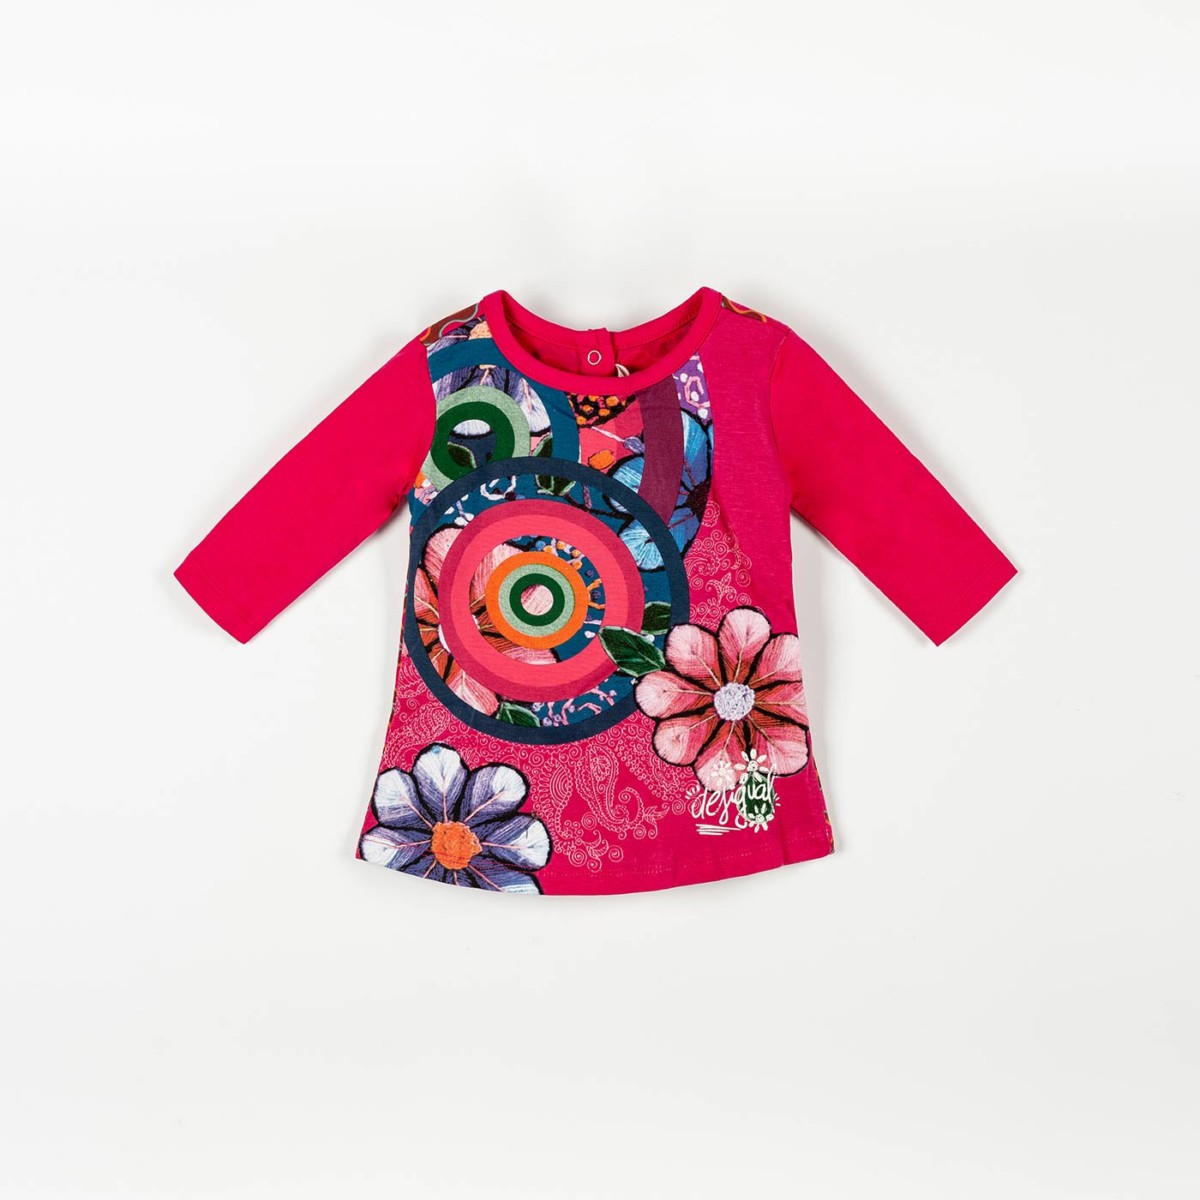 DESIGUAL Baby Girl Infant T-shirt Tee Top Pink Size 3 months 62cm NEW RRP $39